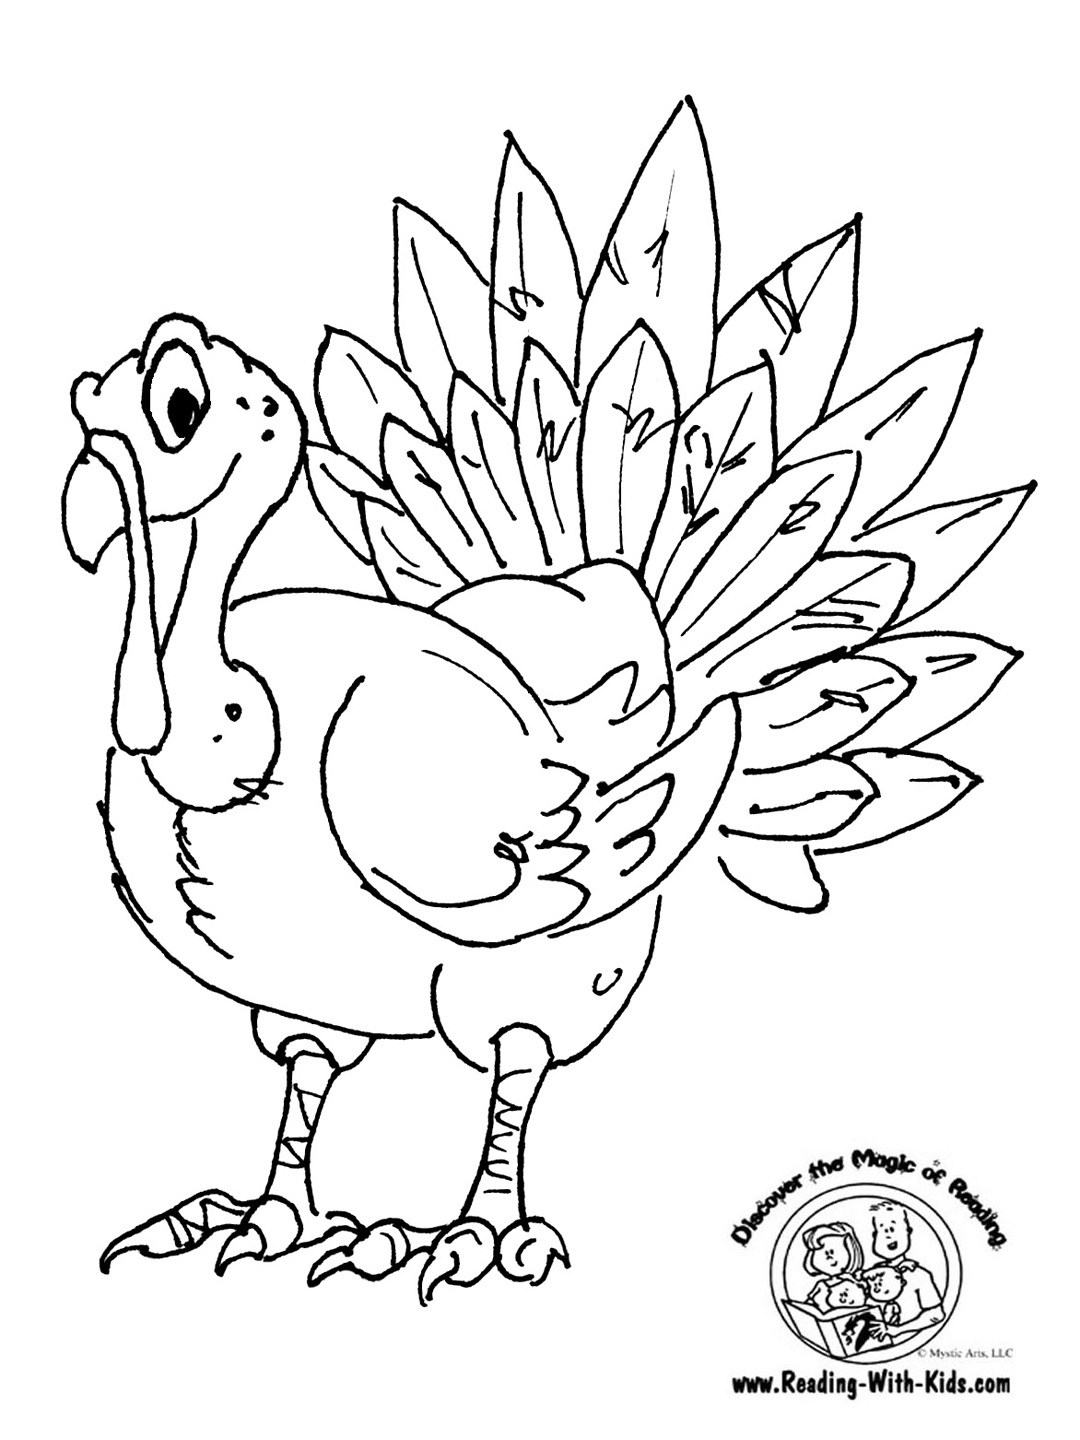 1080x1440 Stock Vector Hand Drawing Turkey For Adult Anti Stress Coloring